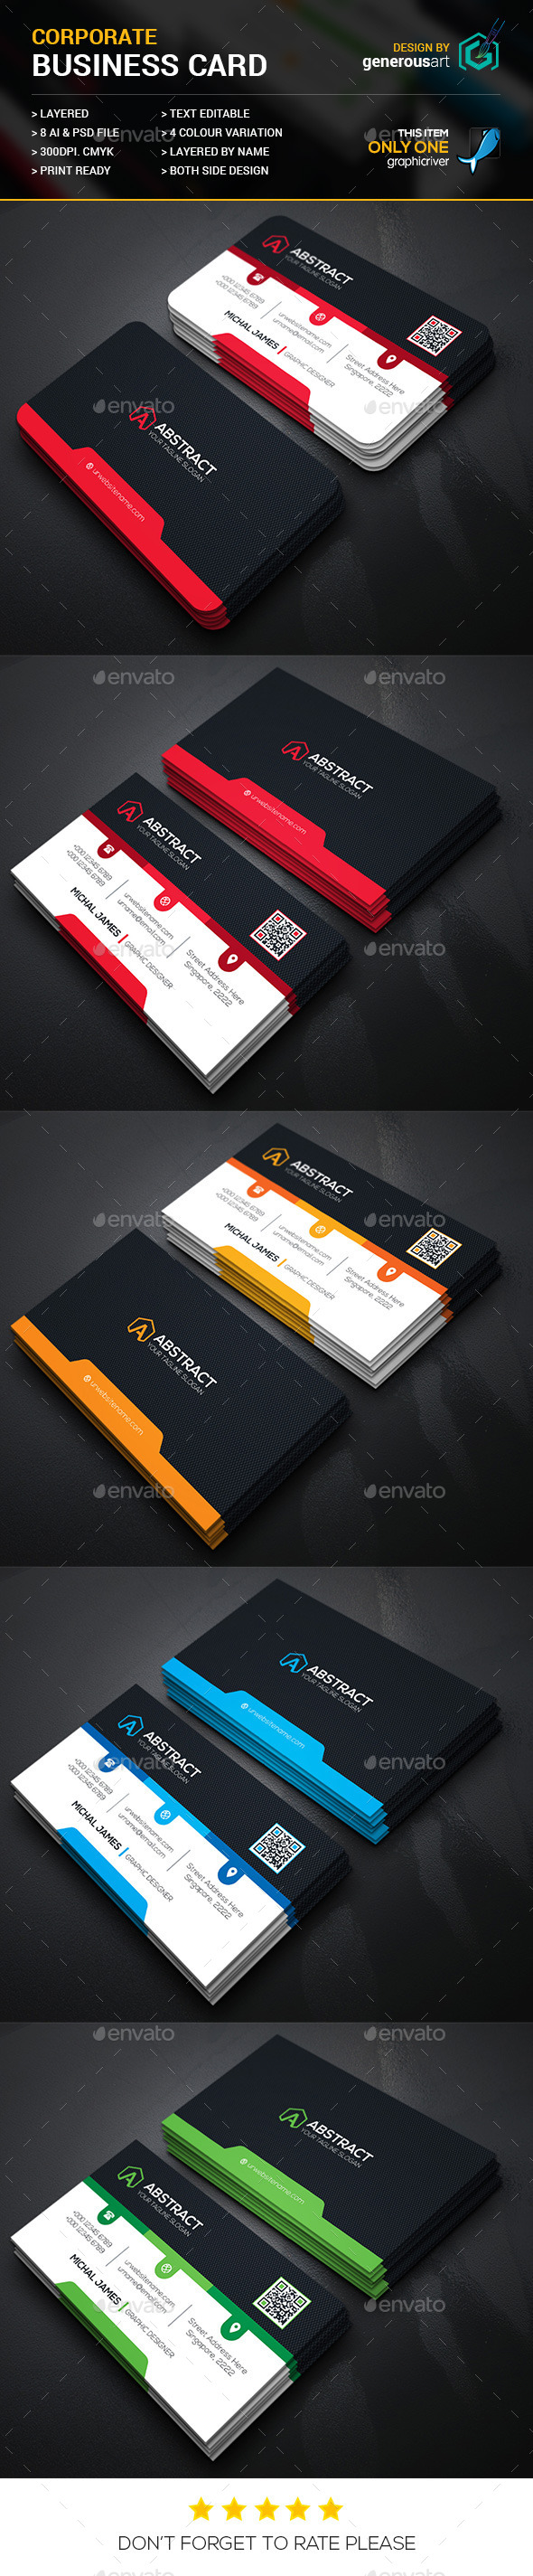 Mega Star Business Card_2 - Corporate Business Cards